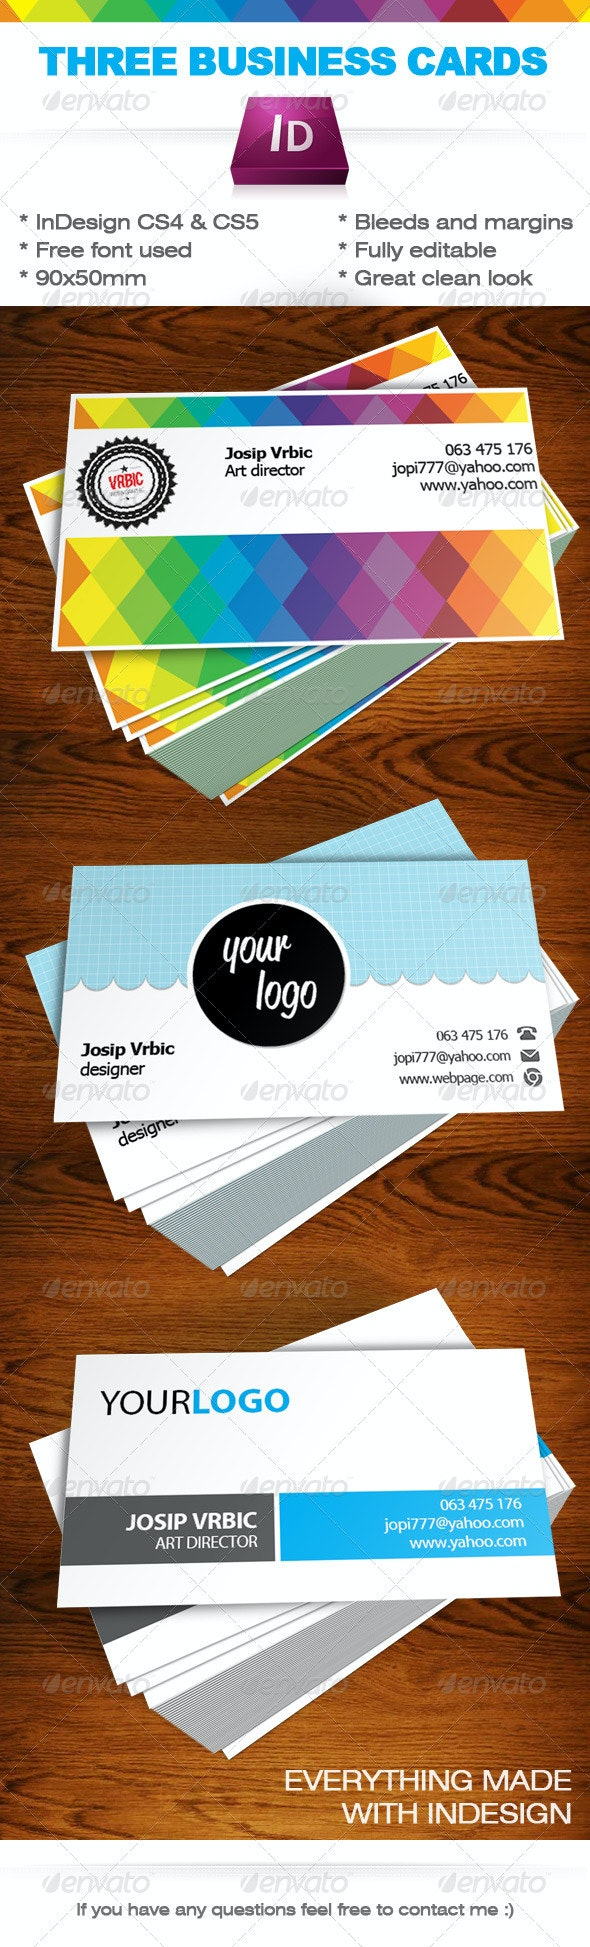 Business Cards InDesign Templates - Corporate Business Cards